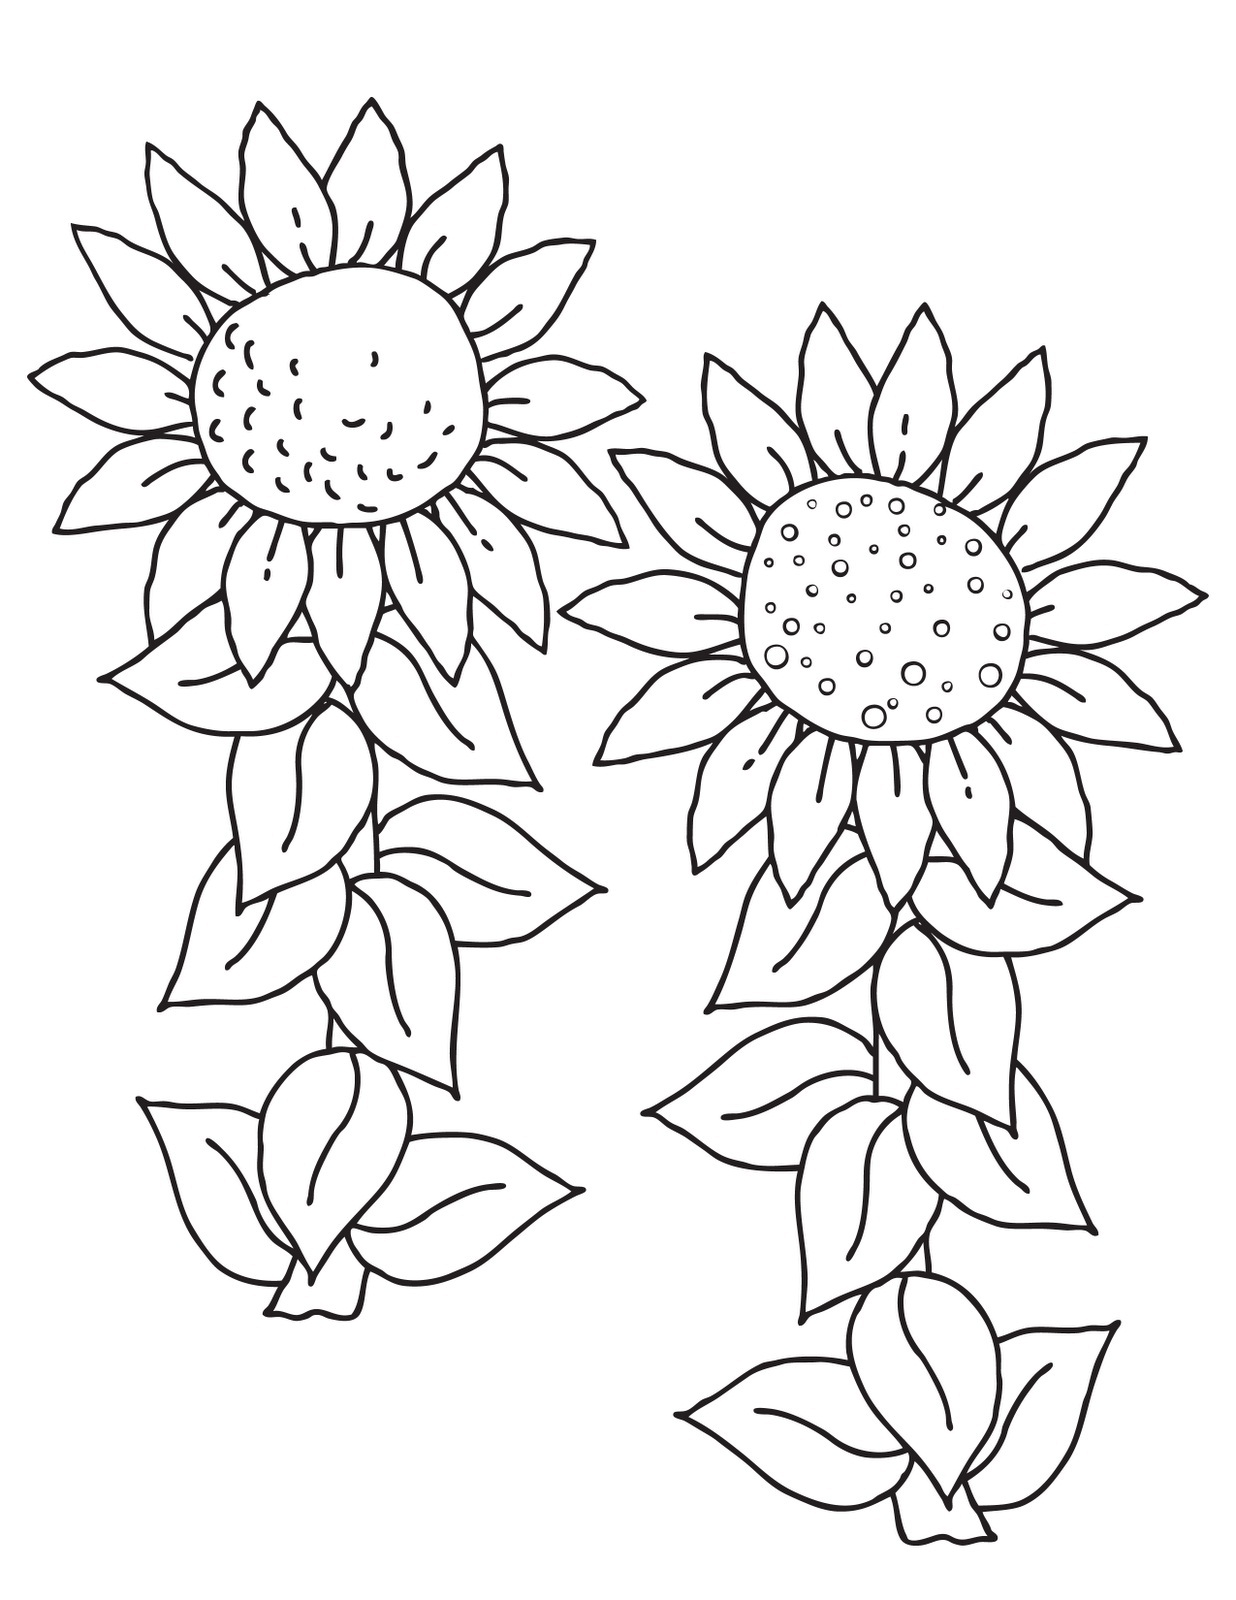 Free Sunflower Coloring Page Download Free Clip Art Free